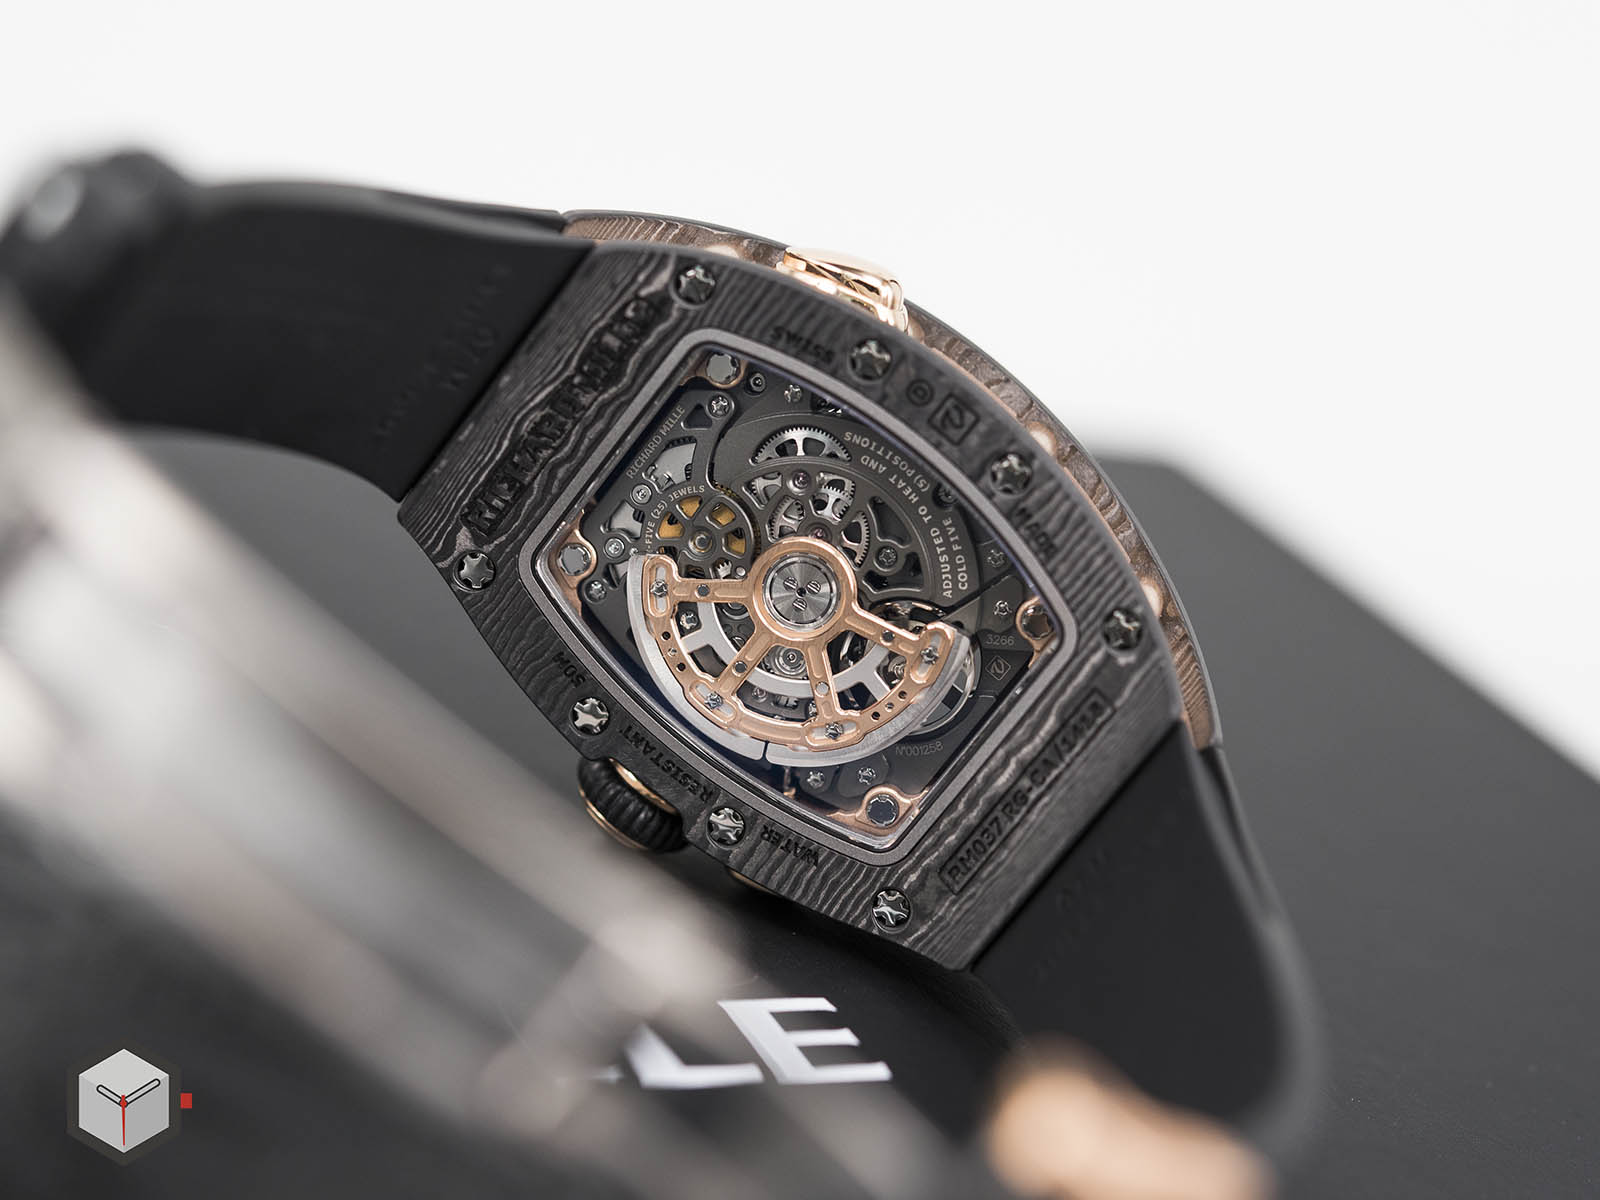 richard-mille-rm-037-automatic-9.jpg